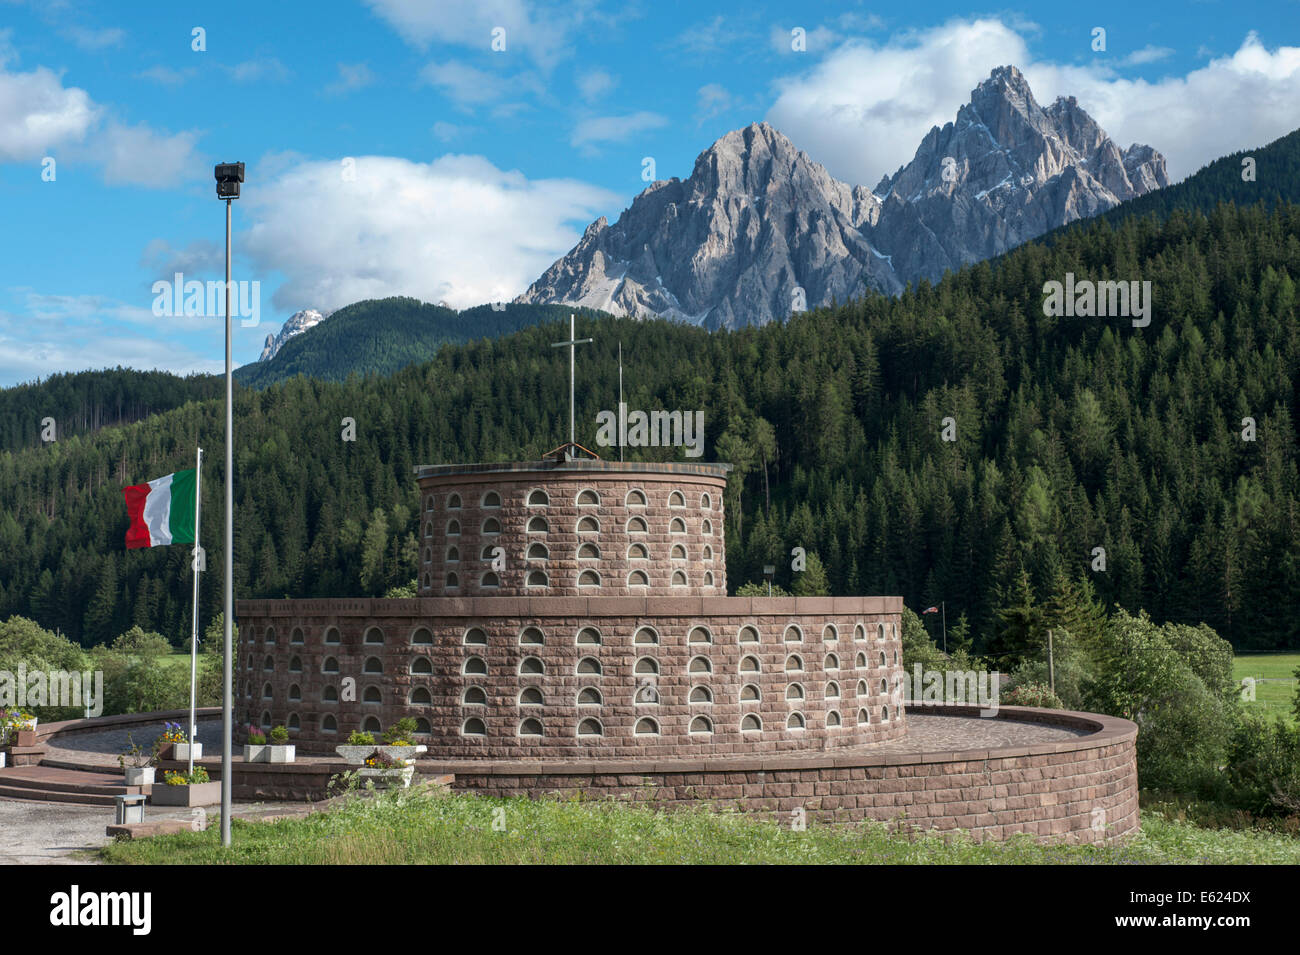 War Memorial, ossuary, built under Mussolini in 1939, Innichen, Trentino-Alto Adige, Italy - Stock Image